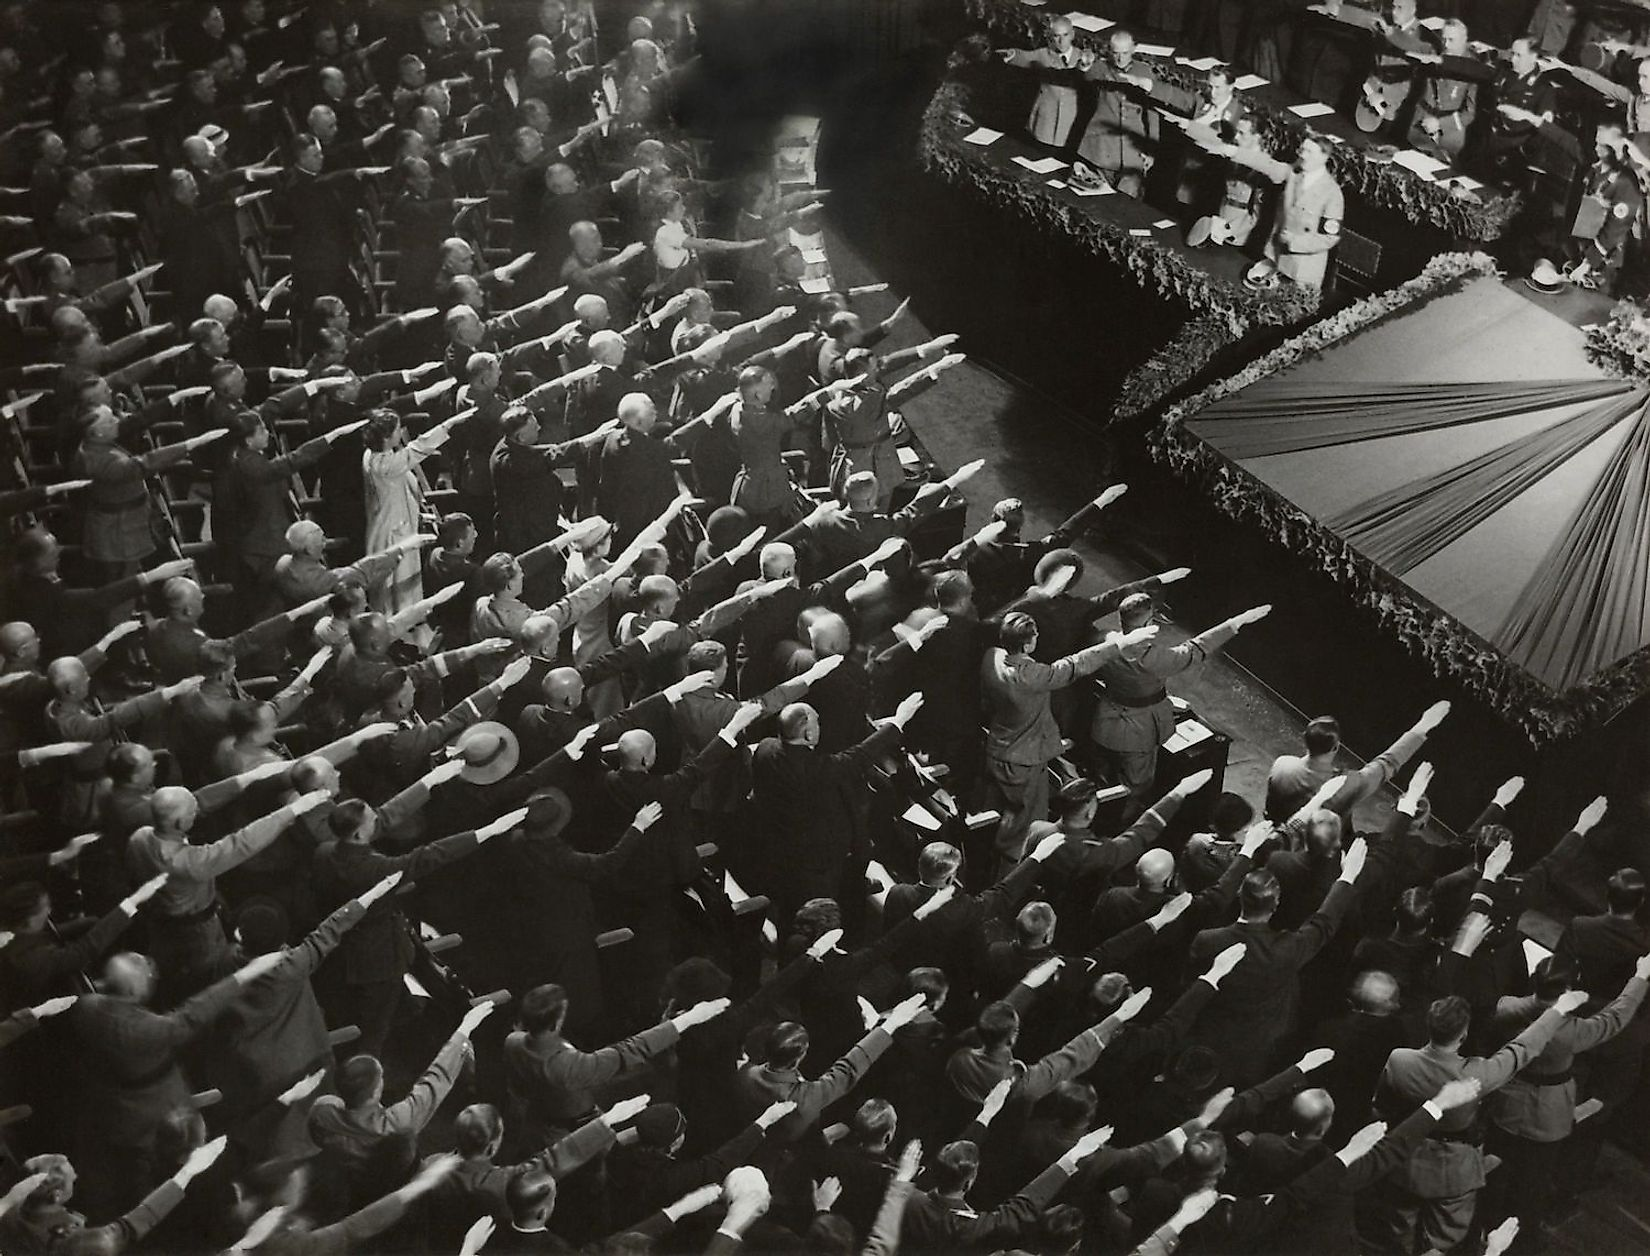 Attendees give Hitler the Nazi salute during the nation anthem, Oct. 9, 1935. They were meeting at the Kroll Opera in Berlin, to organize the Winter Relief festive to help finance charitable work. Image credit: Everett Collection/Shutterstock.com